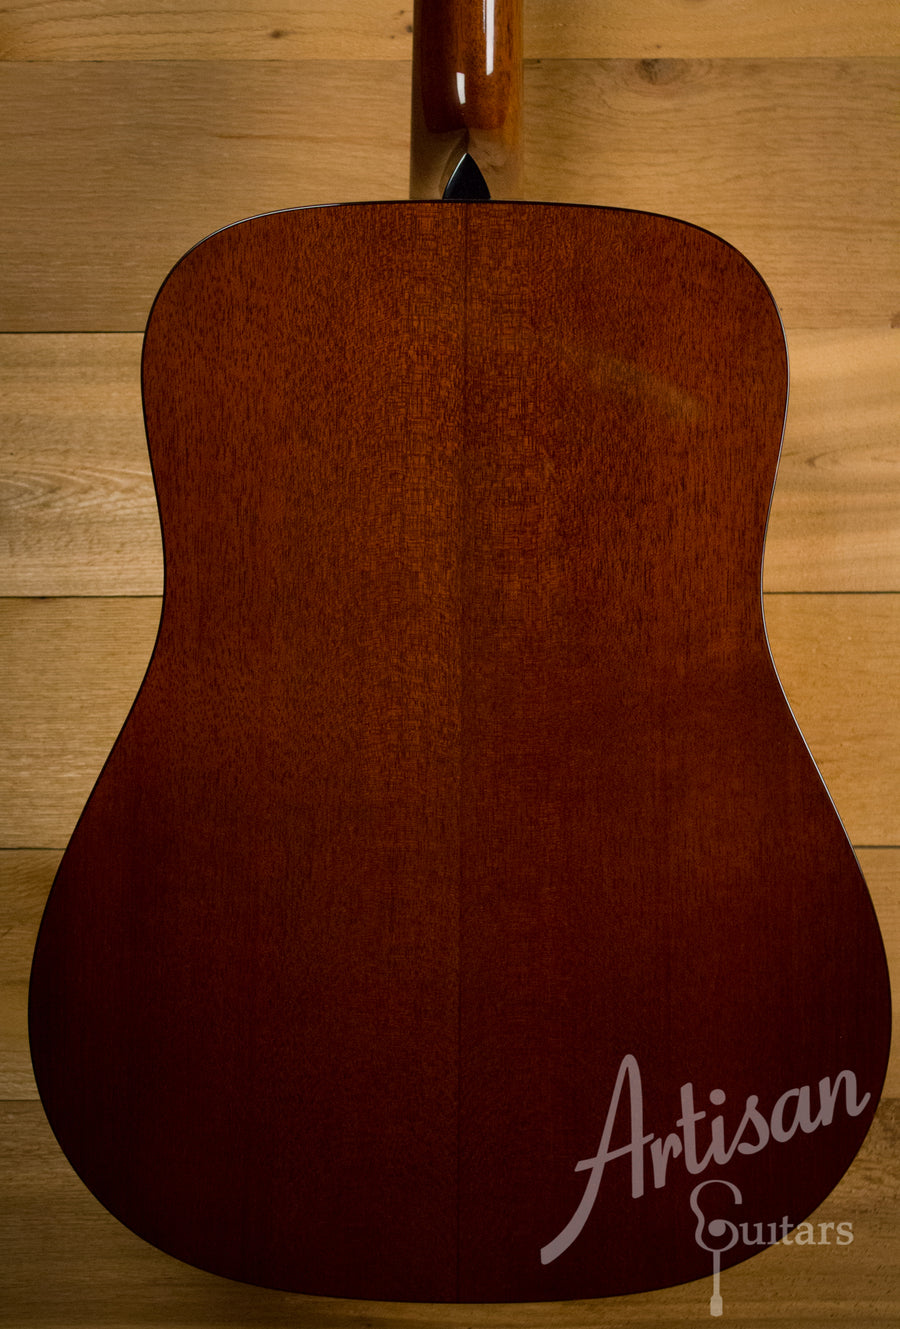 Collings CW Guitar Mh A with Adirondack Braces and No Tongue Brace Pre-Owned 2014 ID-10492 - Artisan Guitars